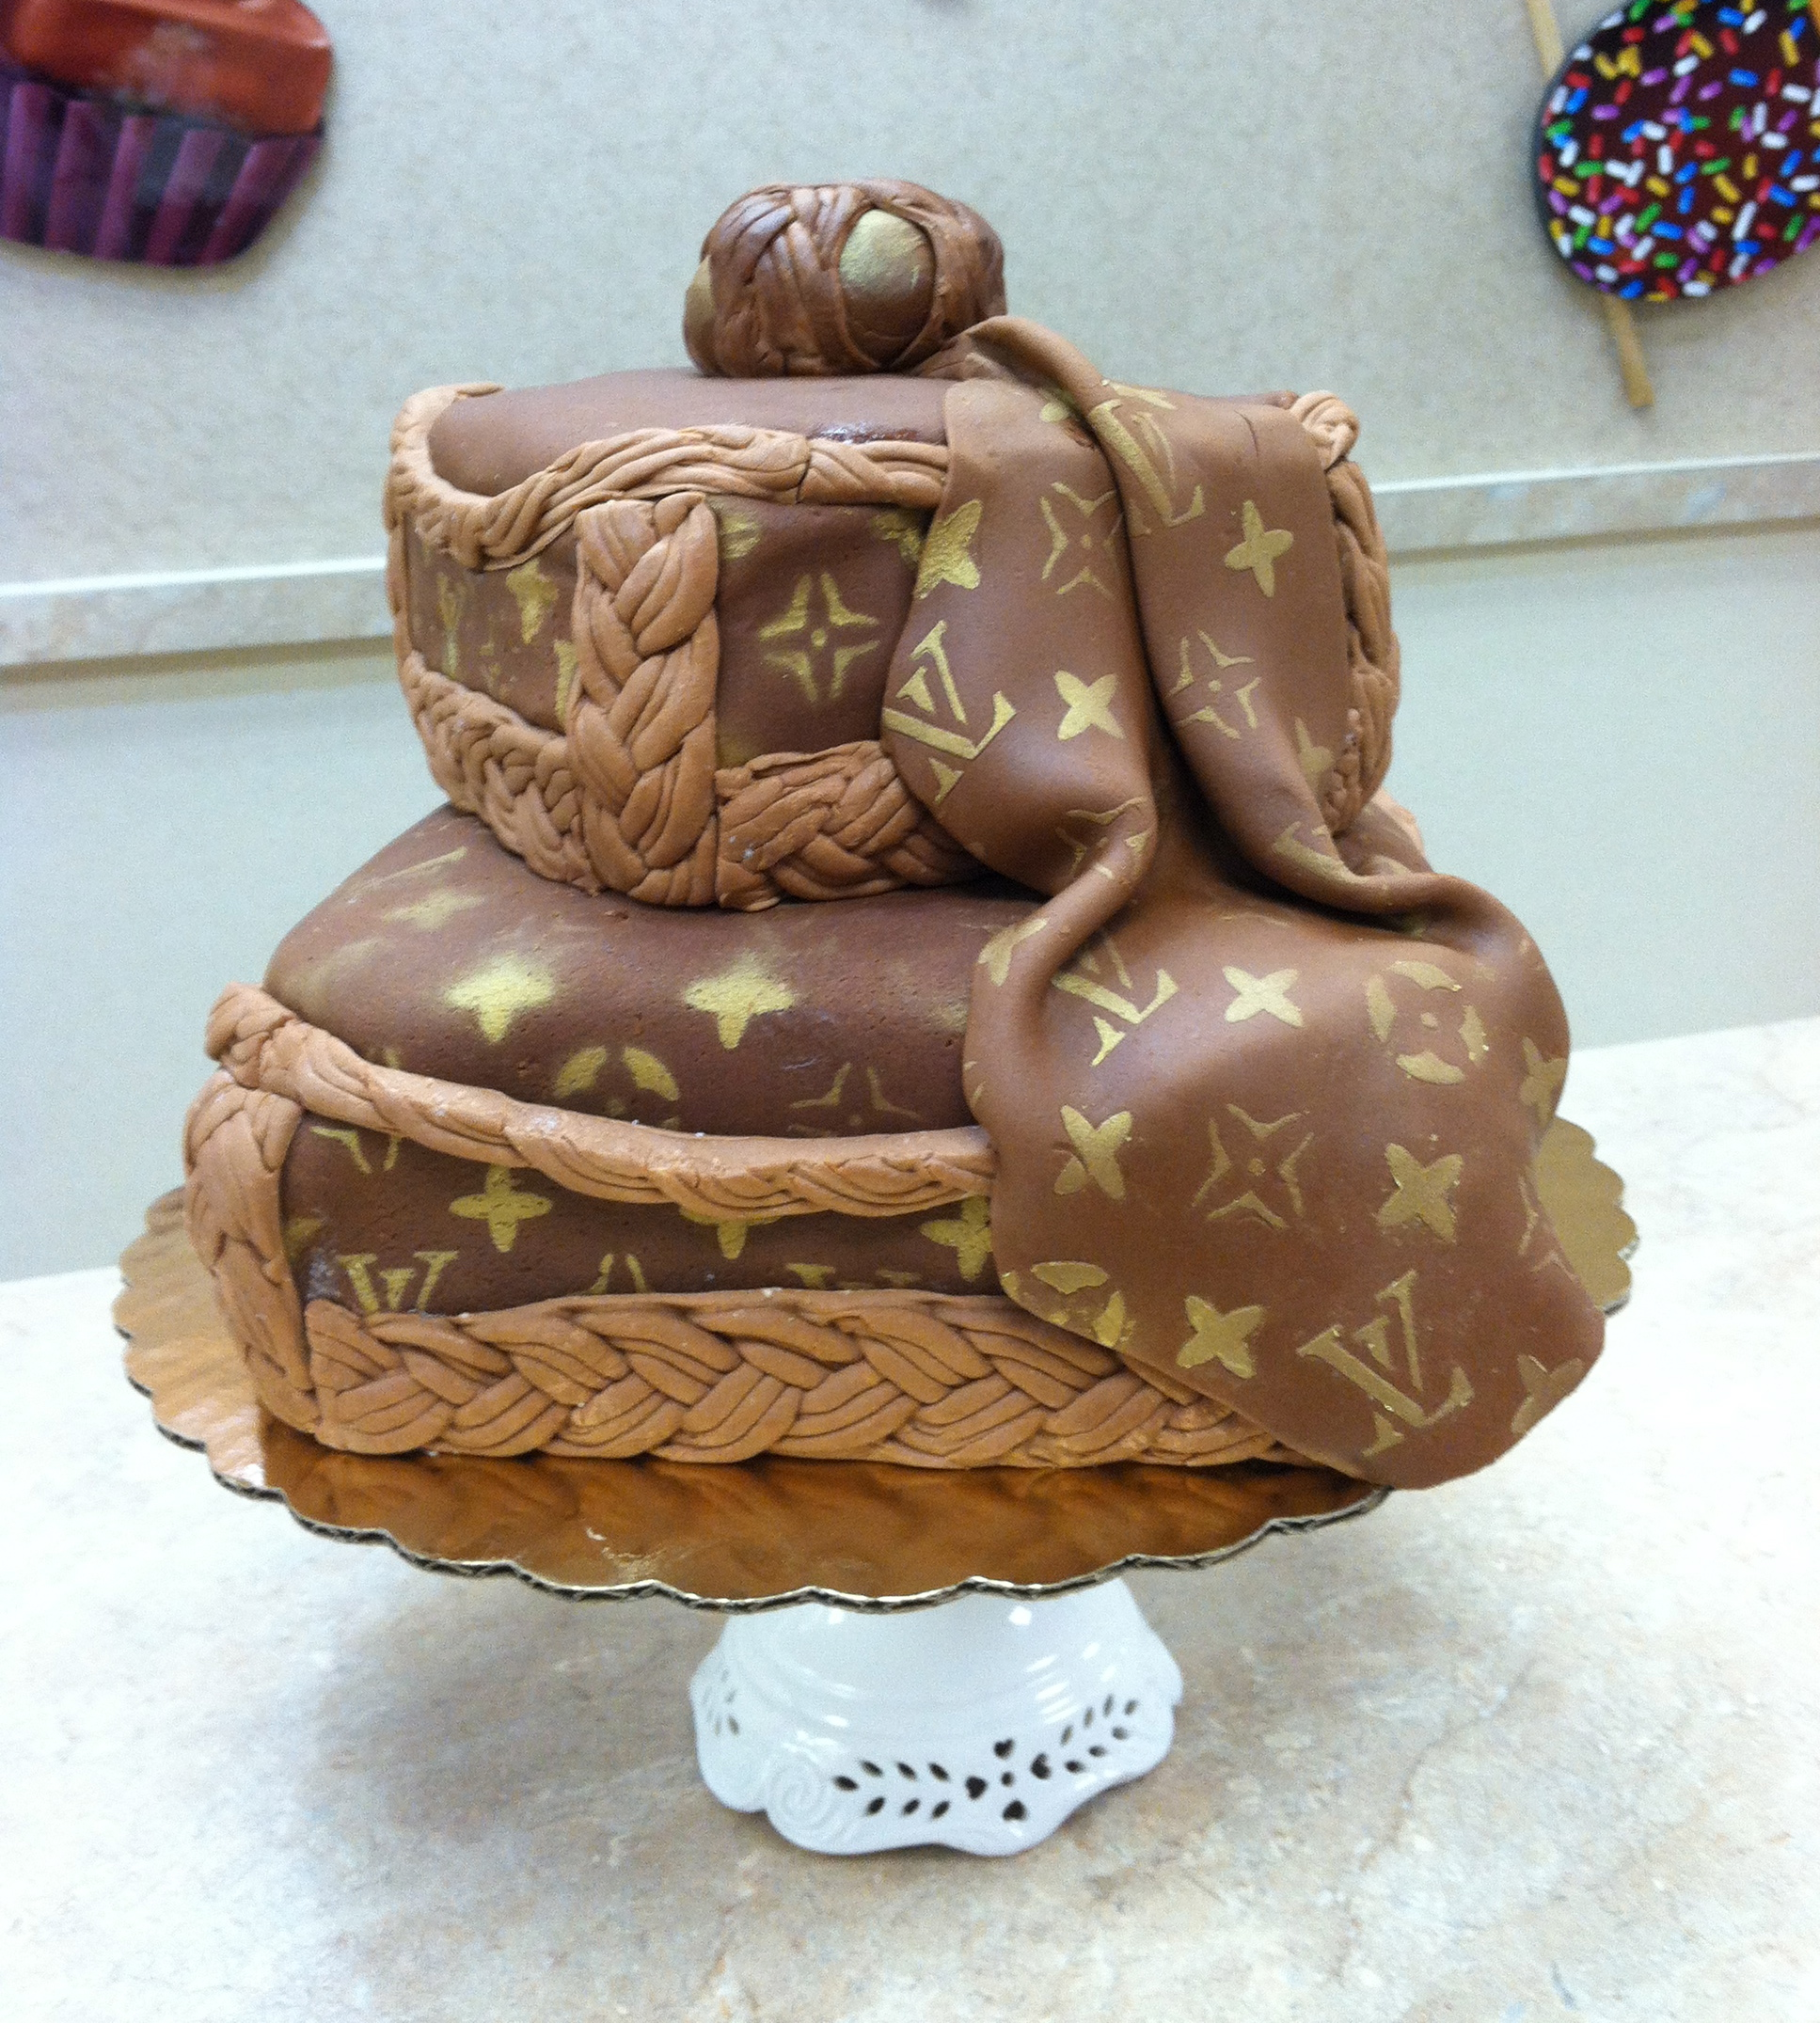 Louis Vuitton Logo Cake